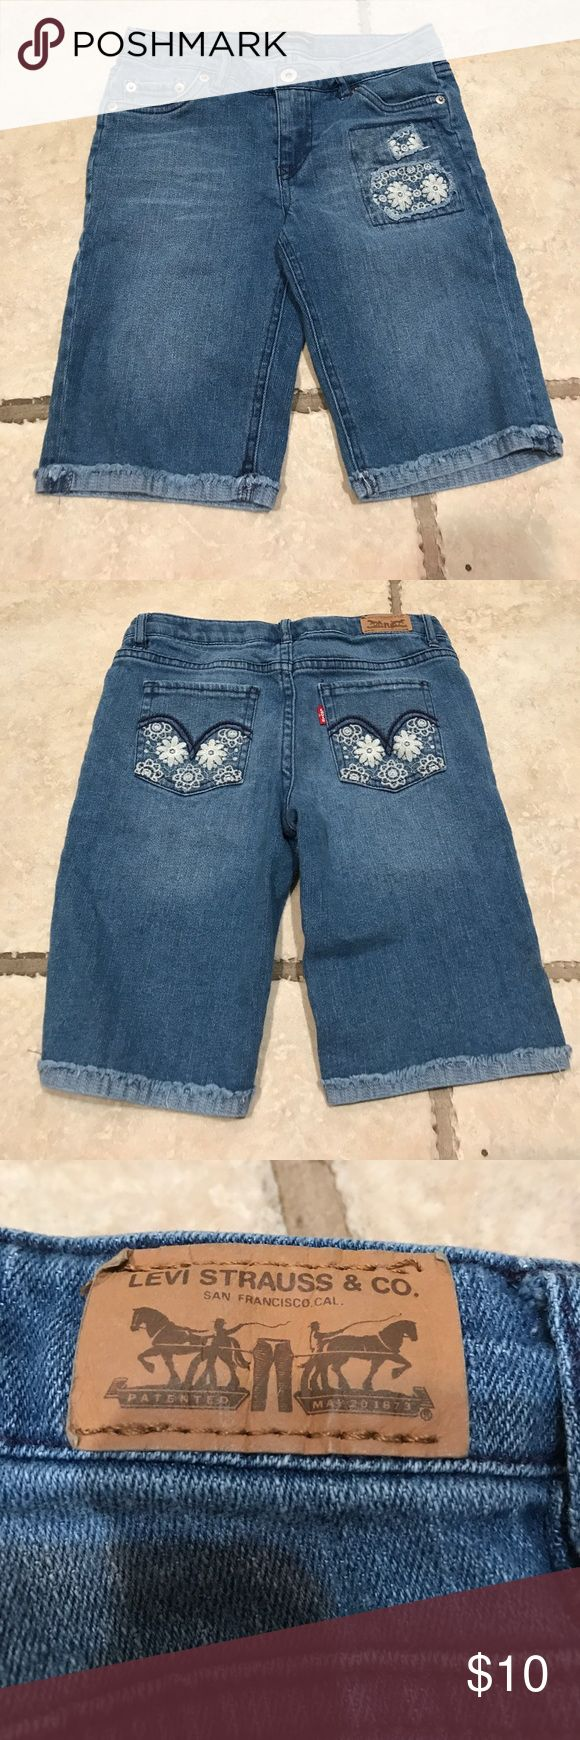 Girls Levi Bermuda shorts Girls Levi Bermuda shorts. Lighter wash, lace designs on back pockets and on the front, adjustable waistband, good condition, size 12 reg Levi's Bottoms Shorts